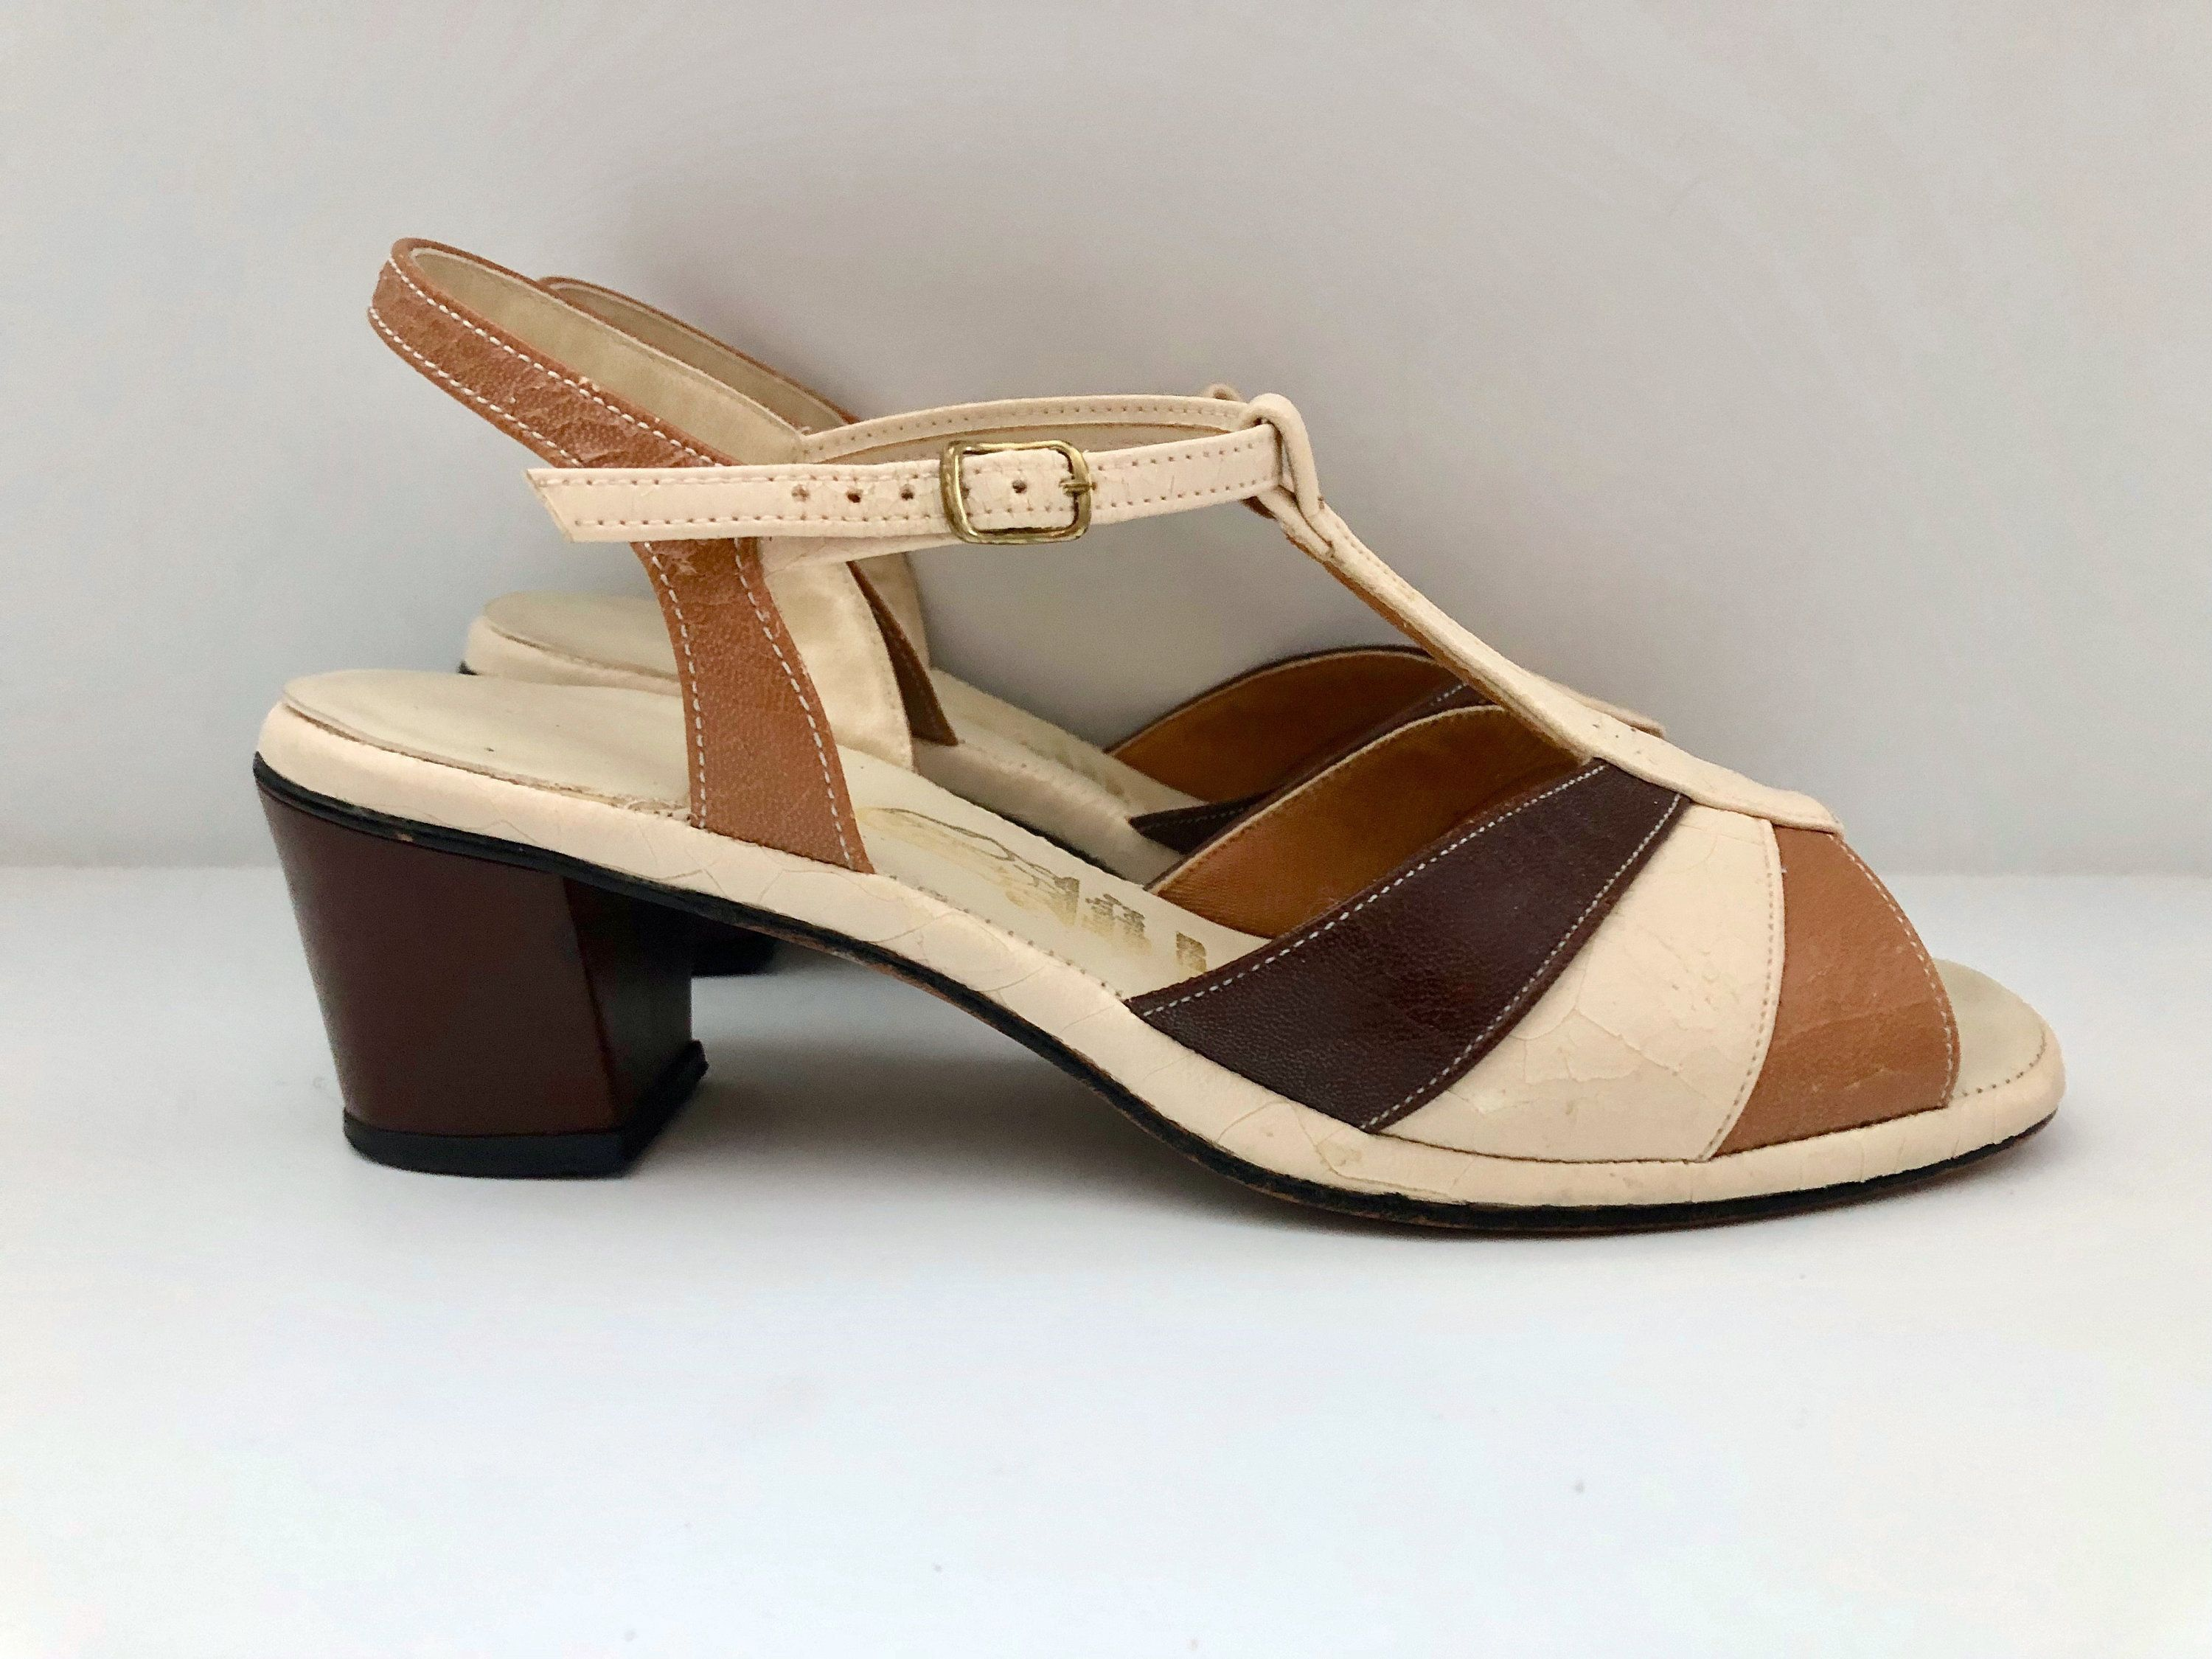 Healthy Walking With Earth Shoes Earth Shoes 1970s Sweet Memories